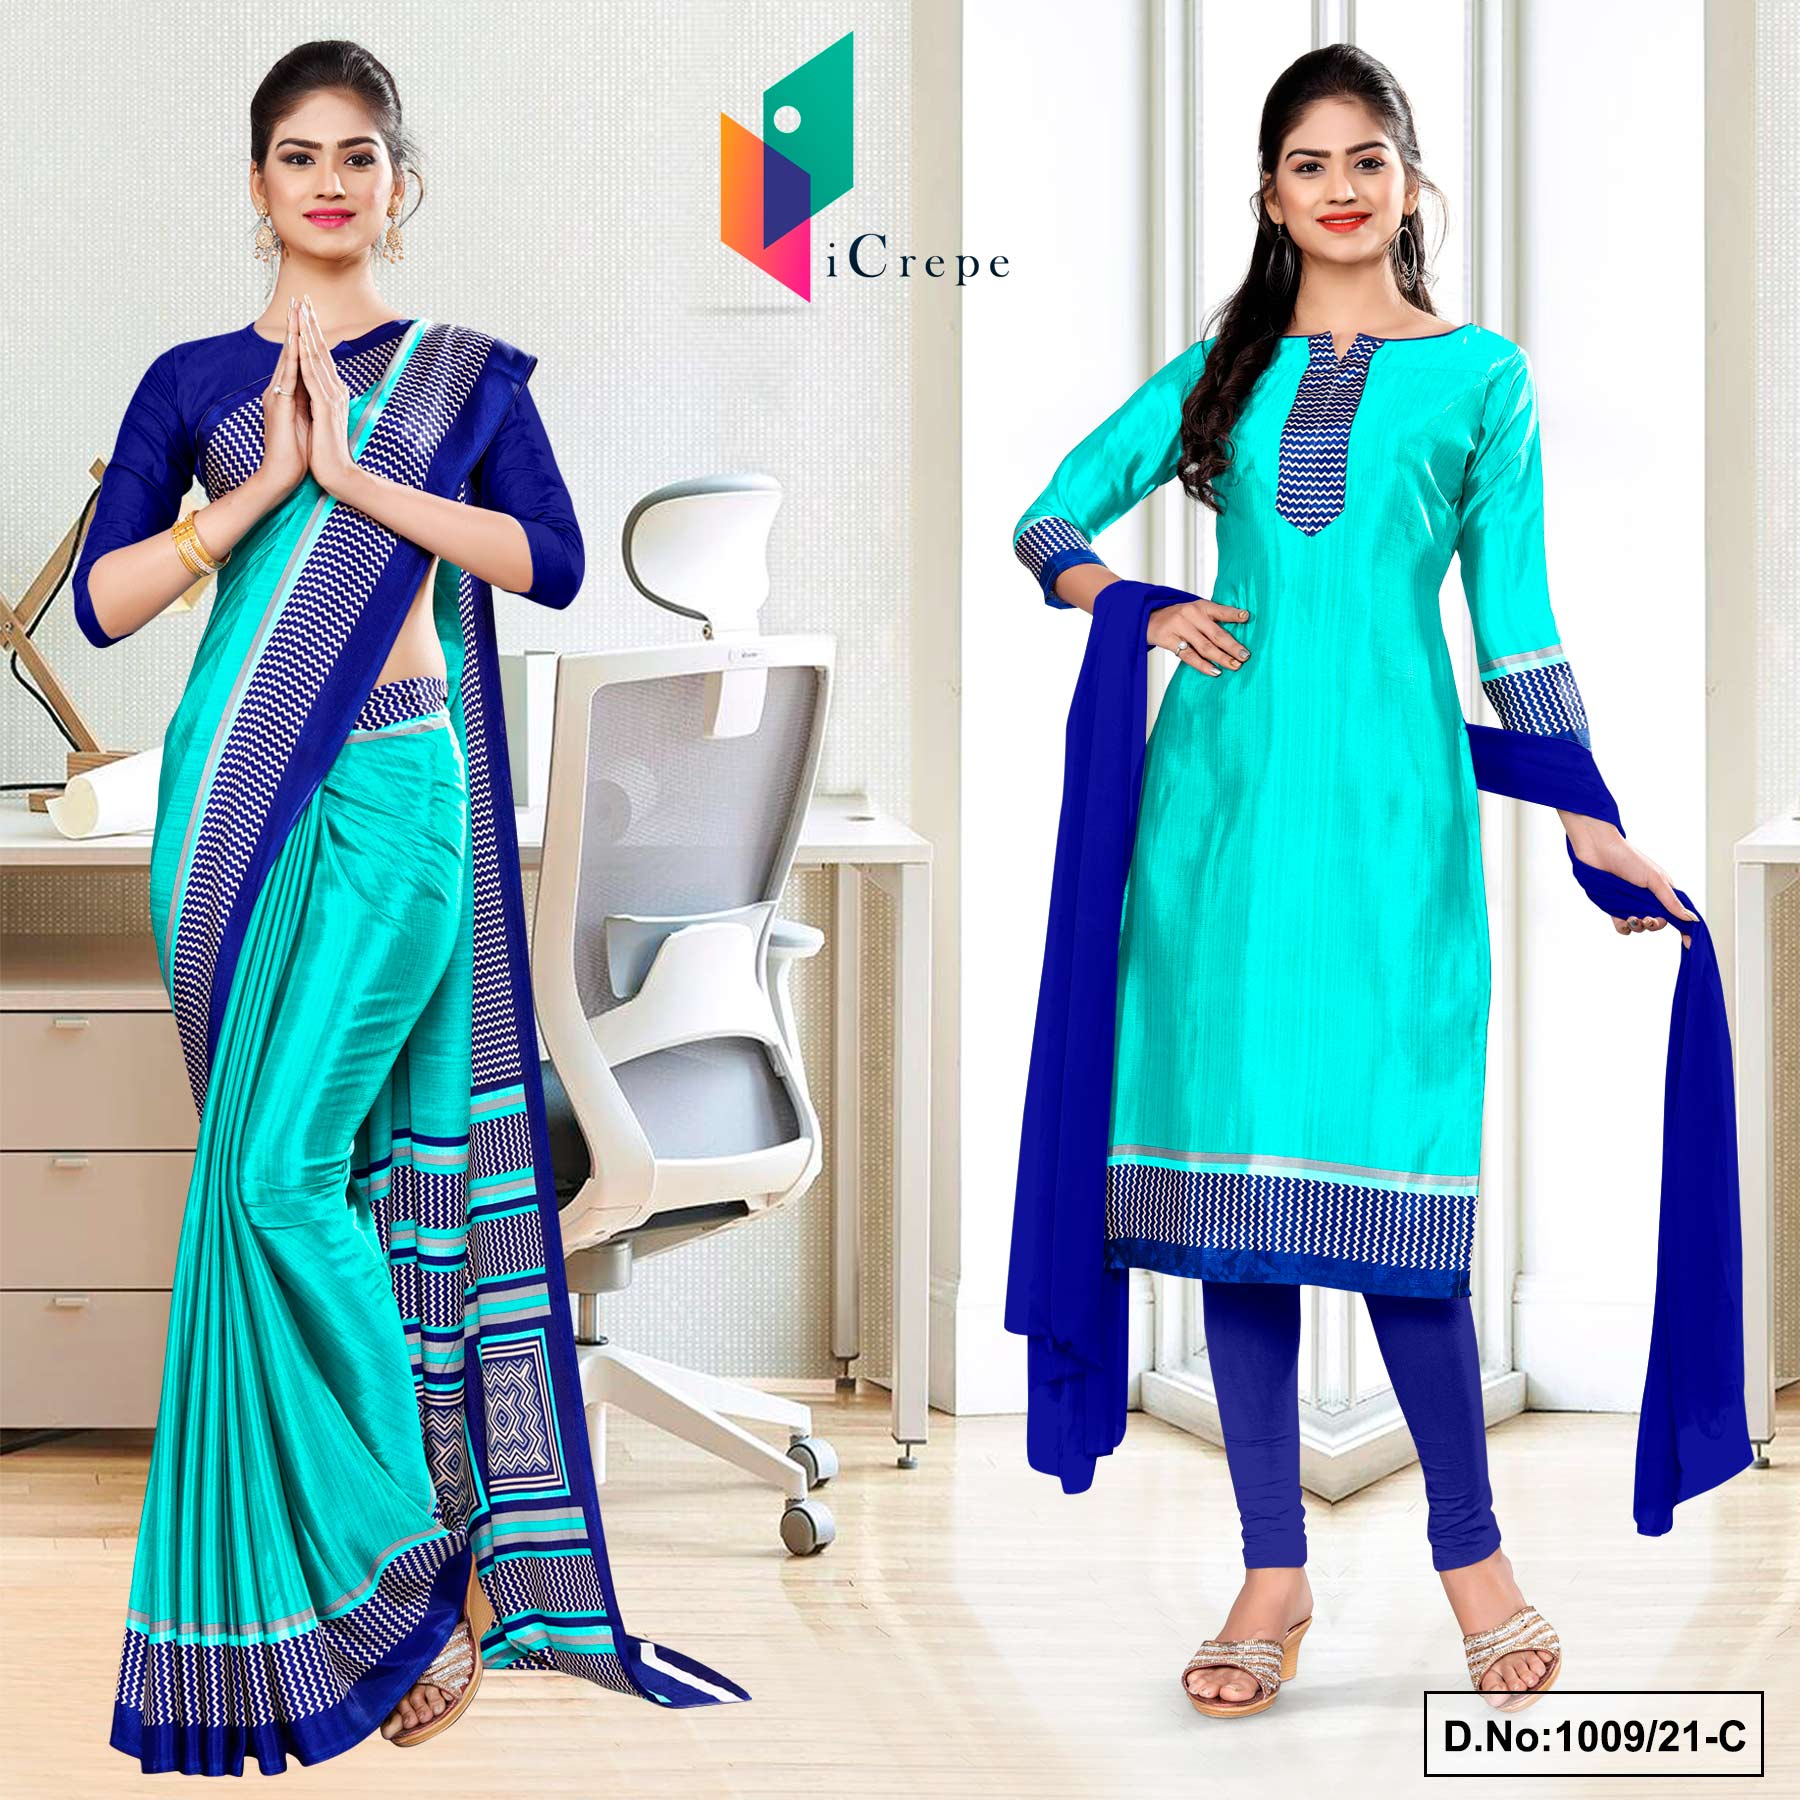 Sea Green Navy Blue Premium Italian Silk Crepe Saree Salwar Combo for Employees Uniform Sarees